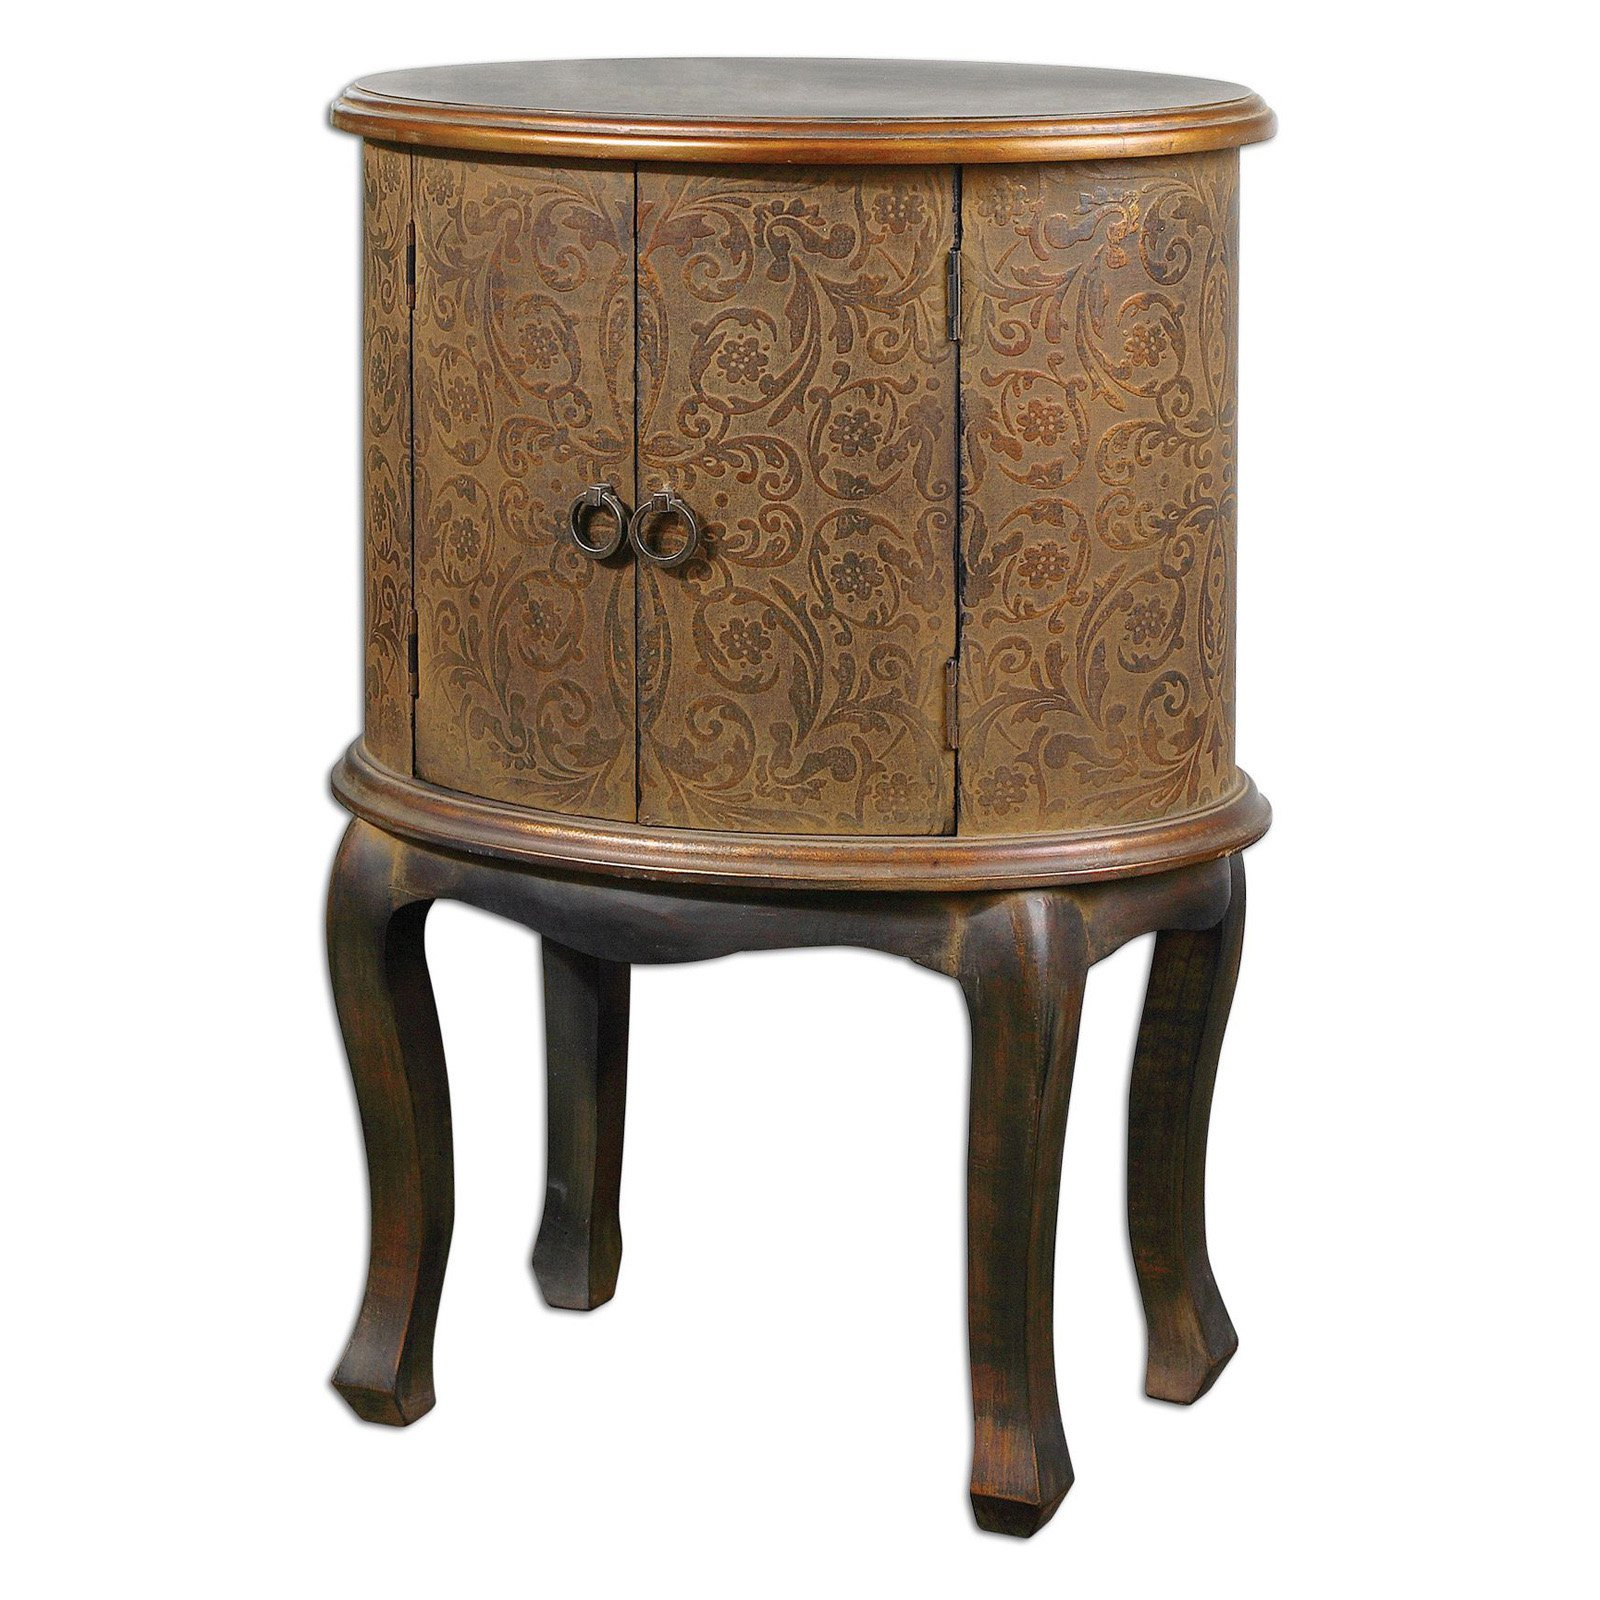 avani mango wood drum accent table pier imports triangle unnamed file gold living room chest bathroom furniture metal garden folding patio decorative legs small plastic outdoor